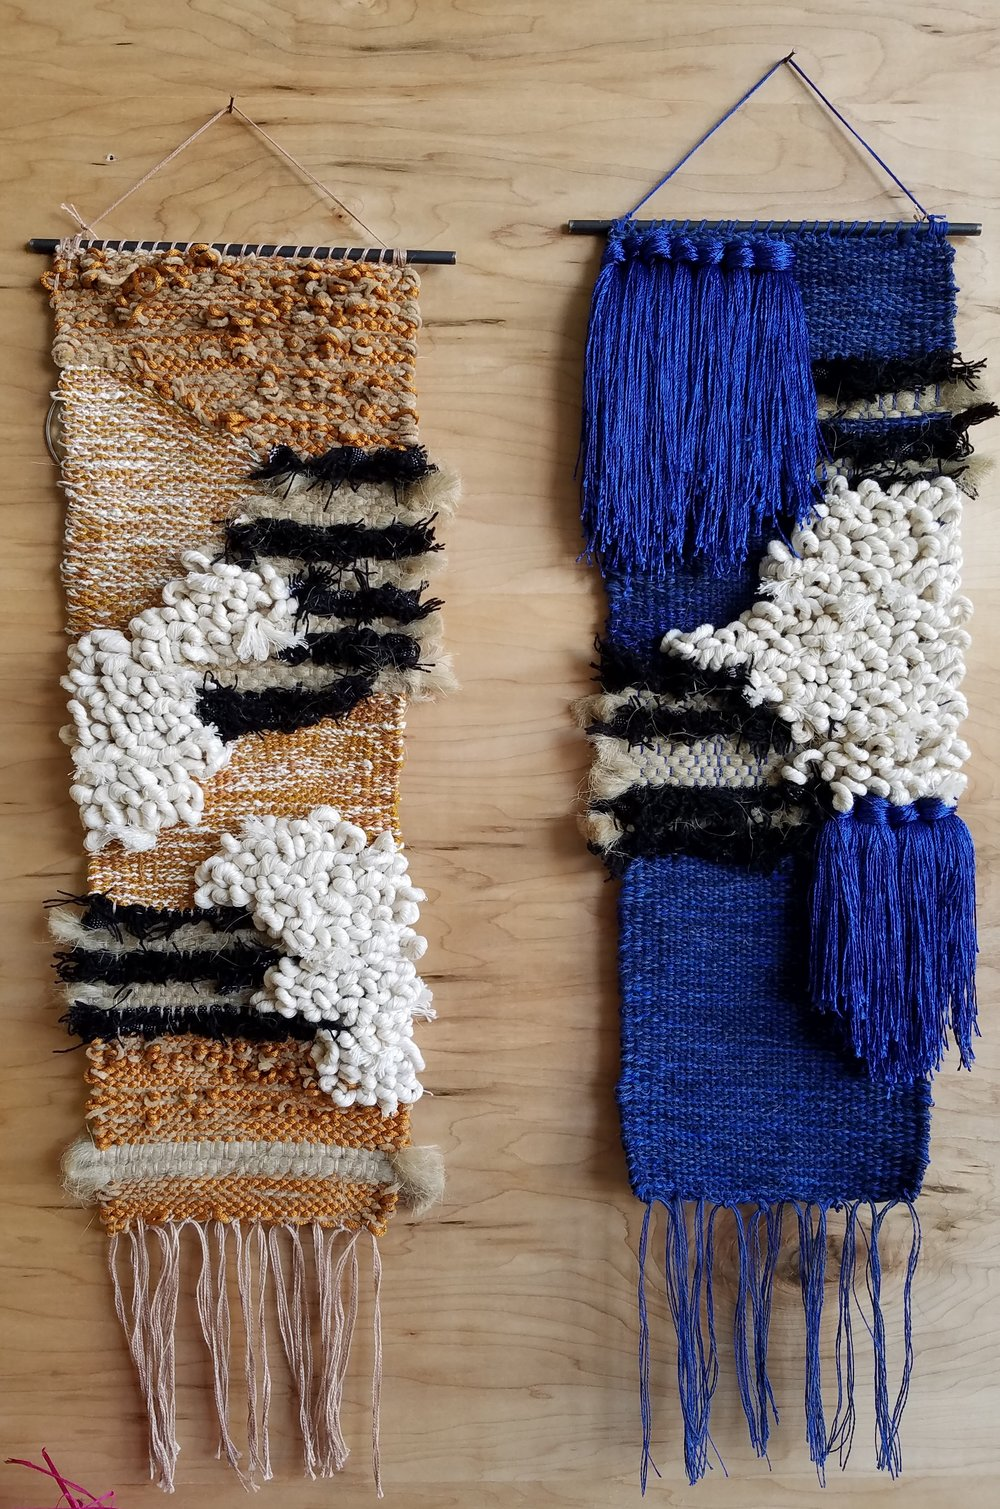 Blue & Ochre Weavings